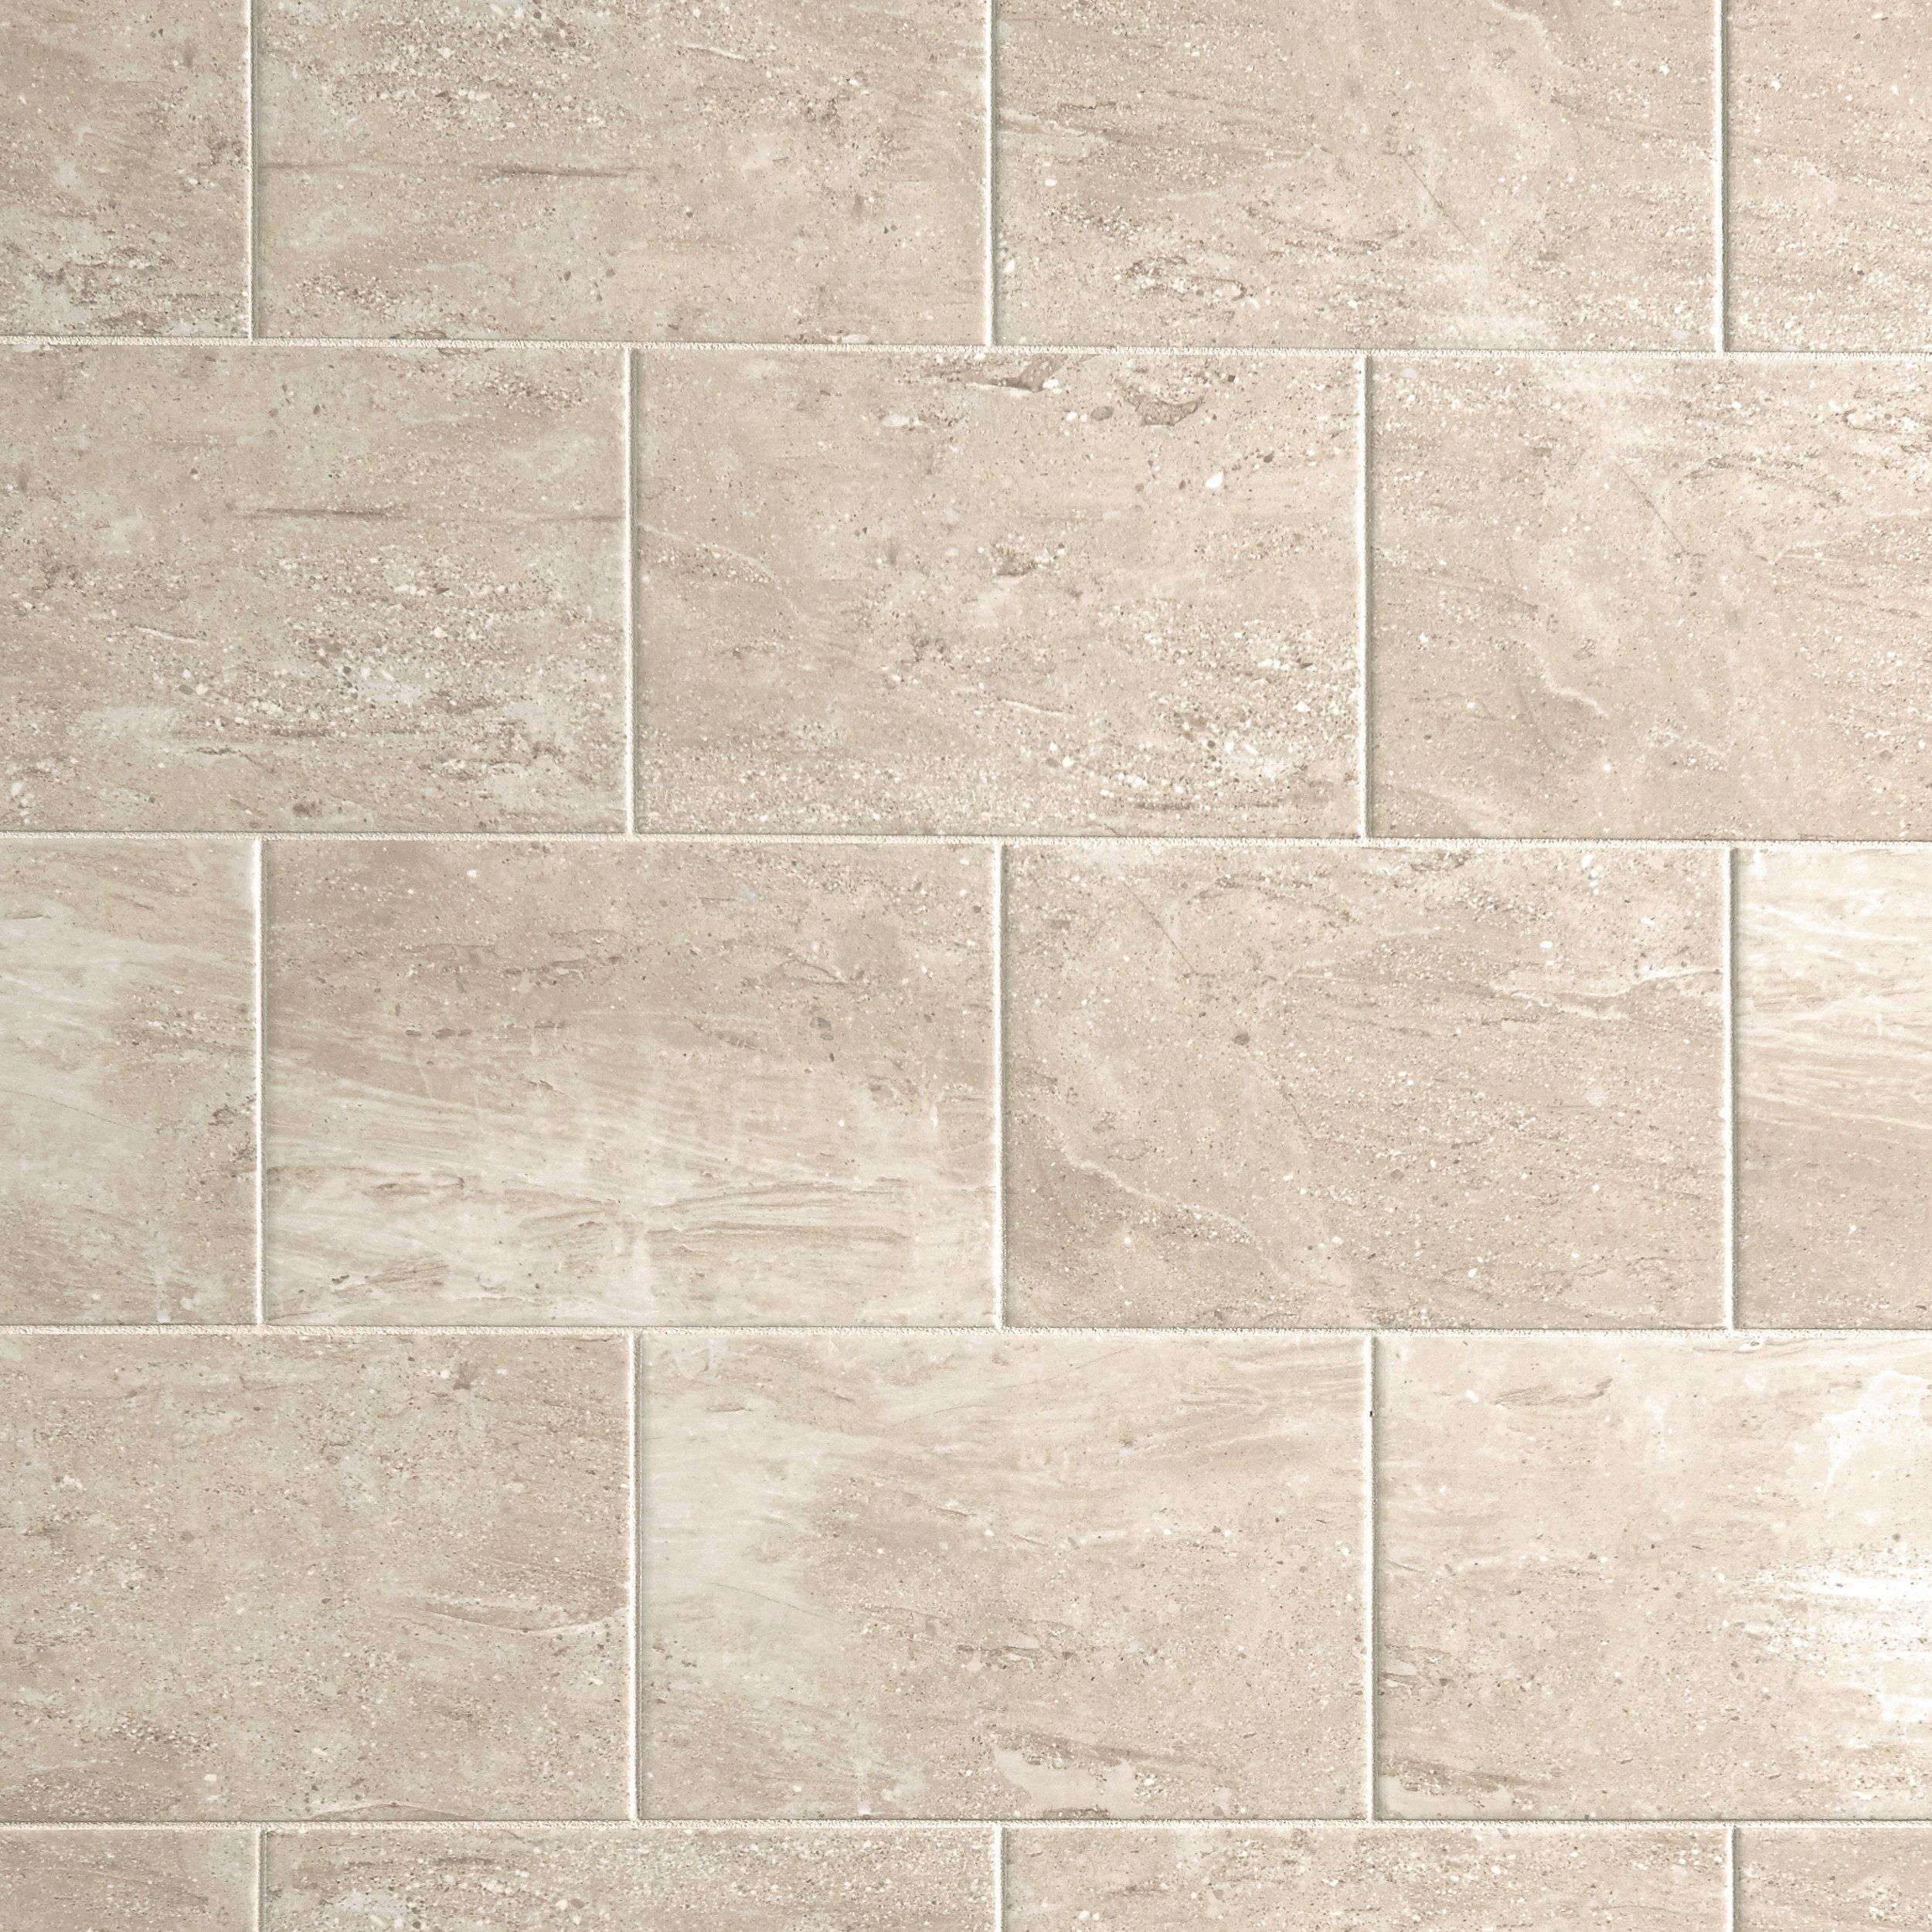 Roman White Marble Ceramic Tile Products In 2019 Tiles